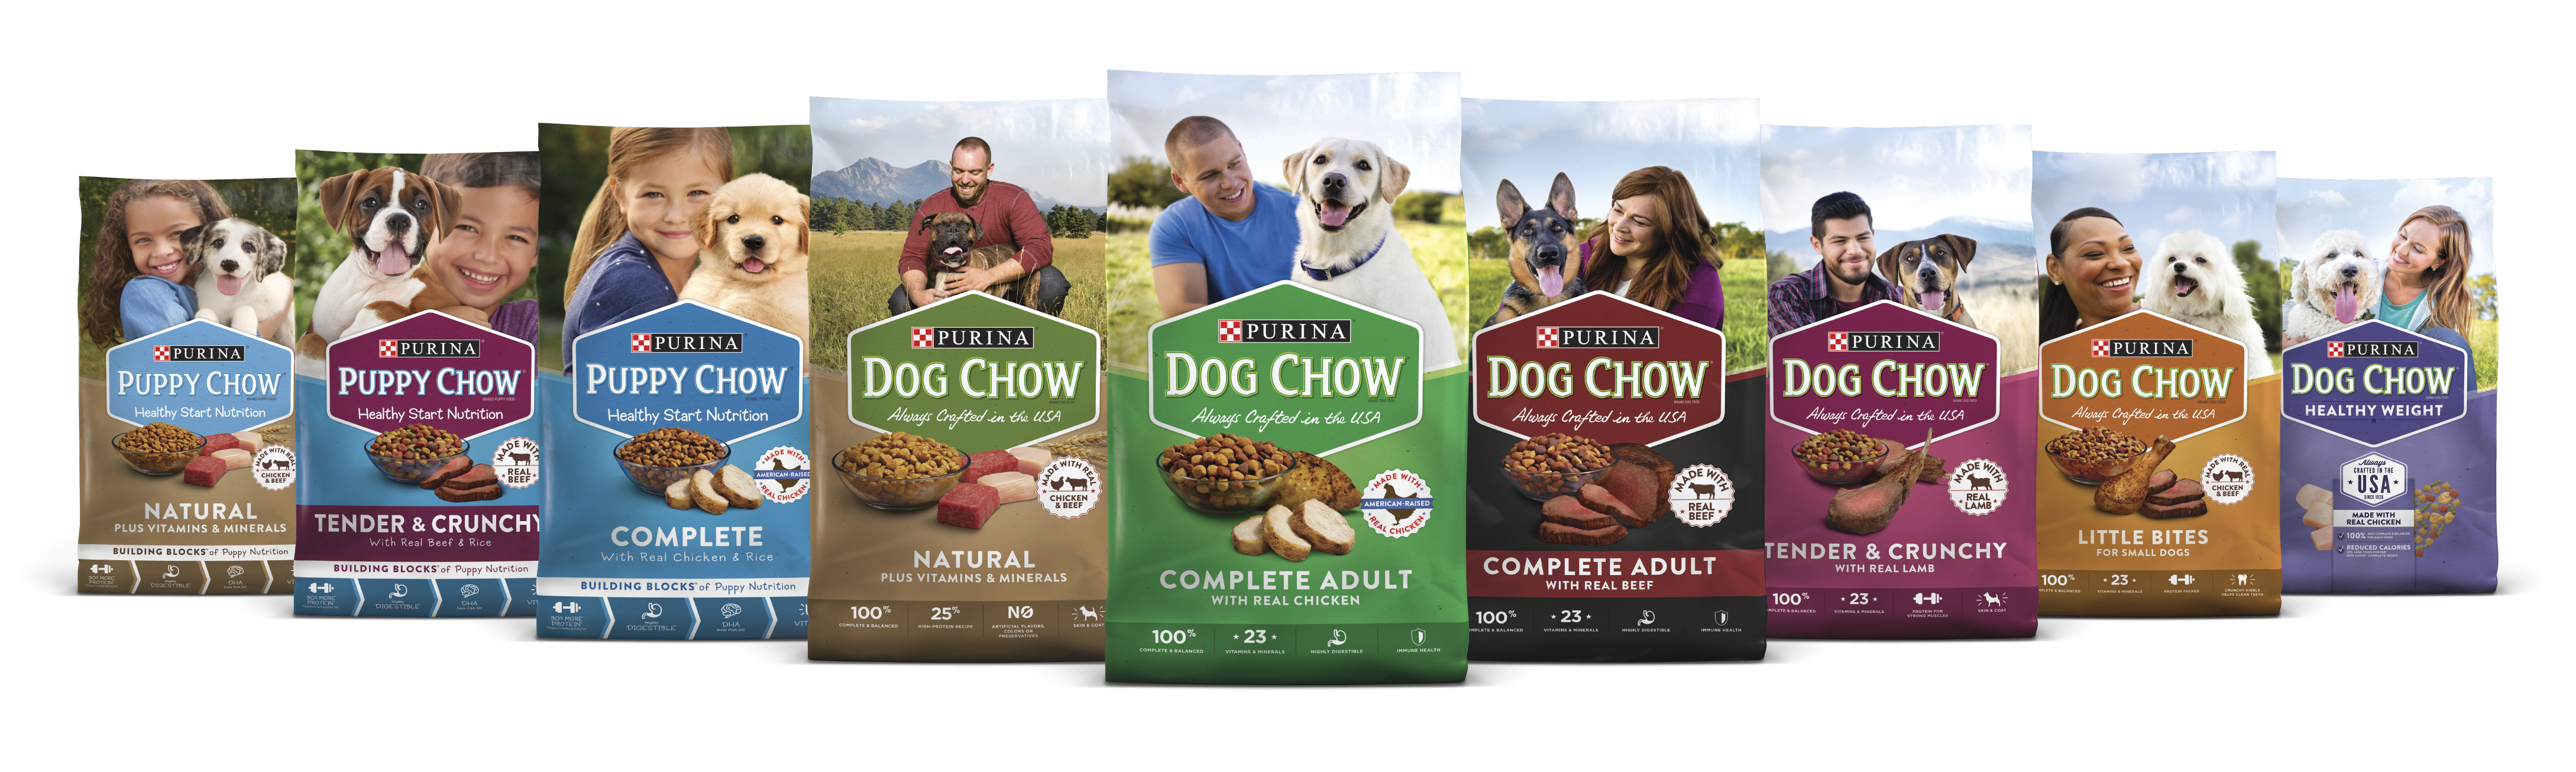 dog-chow-products